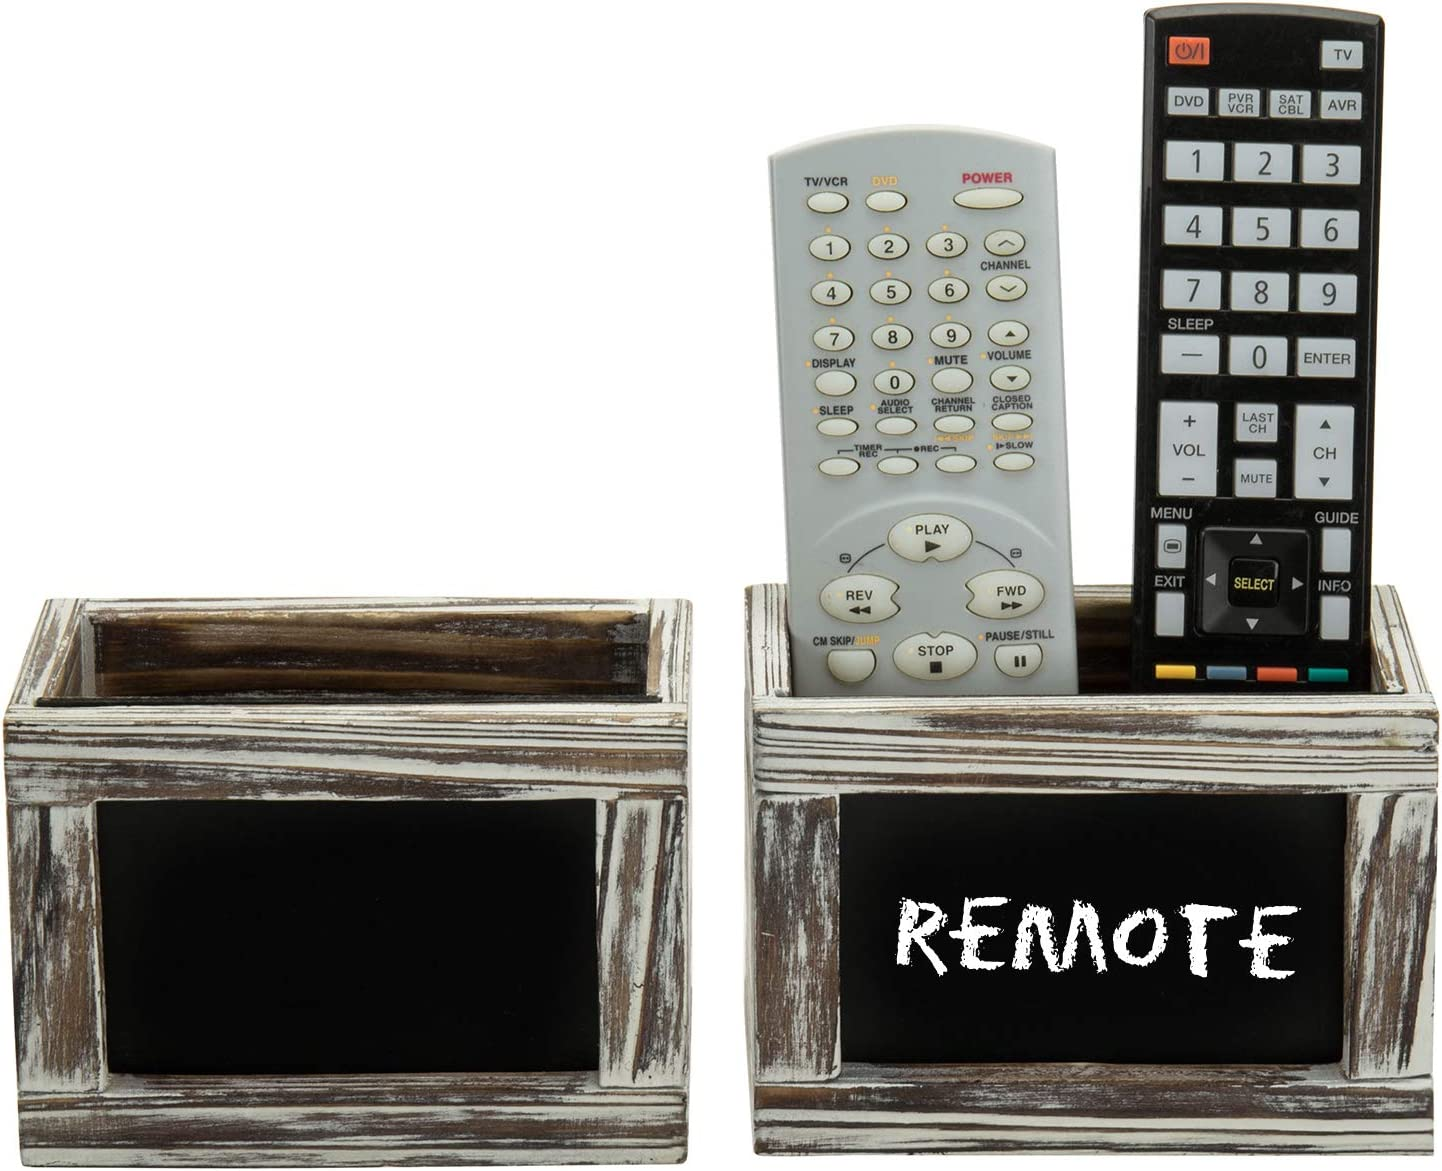 MyGift Rustic Torched Wood Remote Control Holder Wall Mounted Organizer Racks with Chalkboard Surfaces, Set of 2